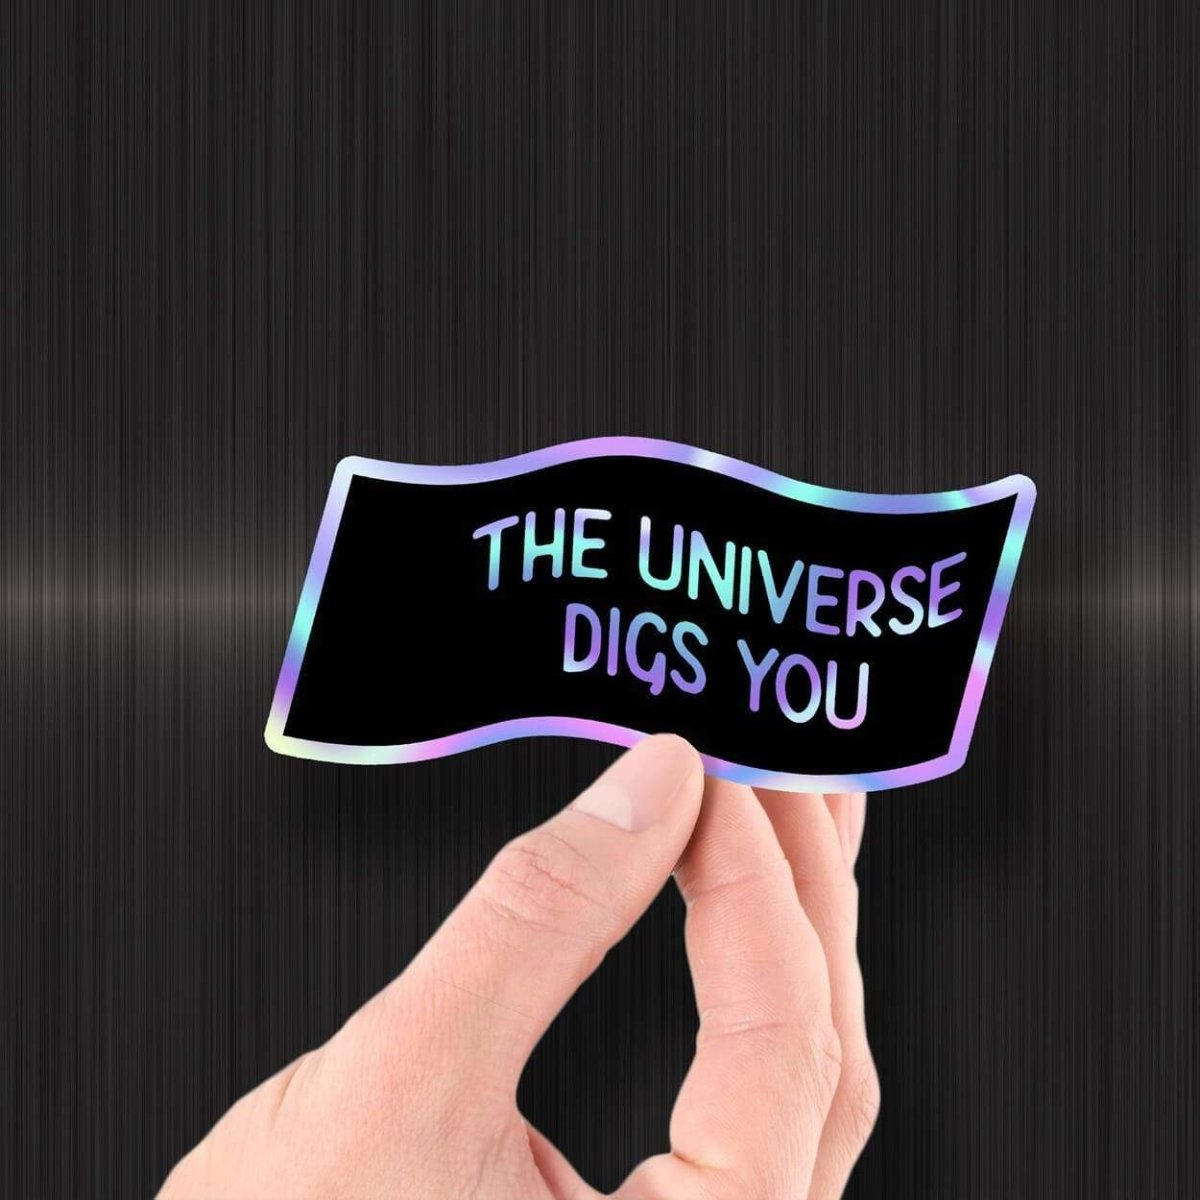 The Universe Digs You - Hologram Sticker - Dan Pearce Sticker Shop